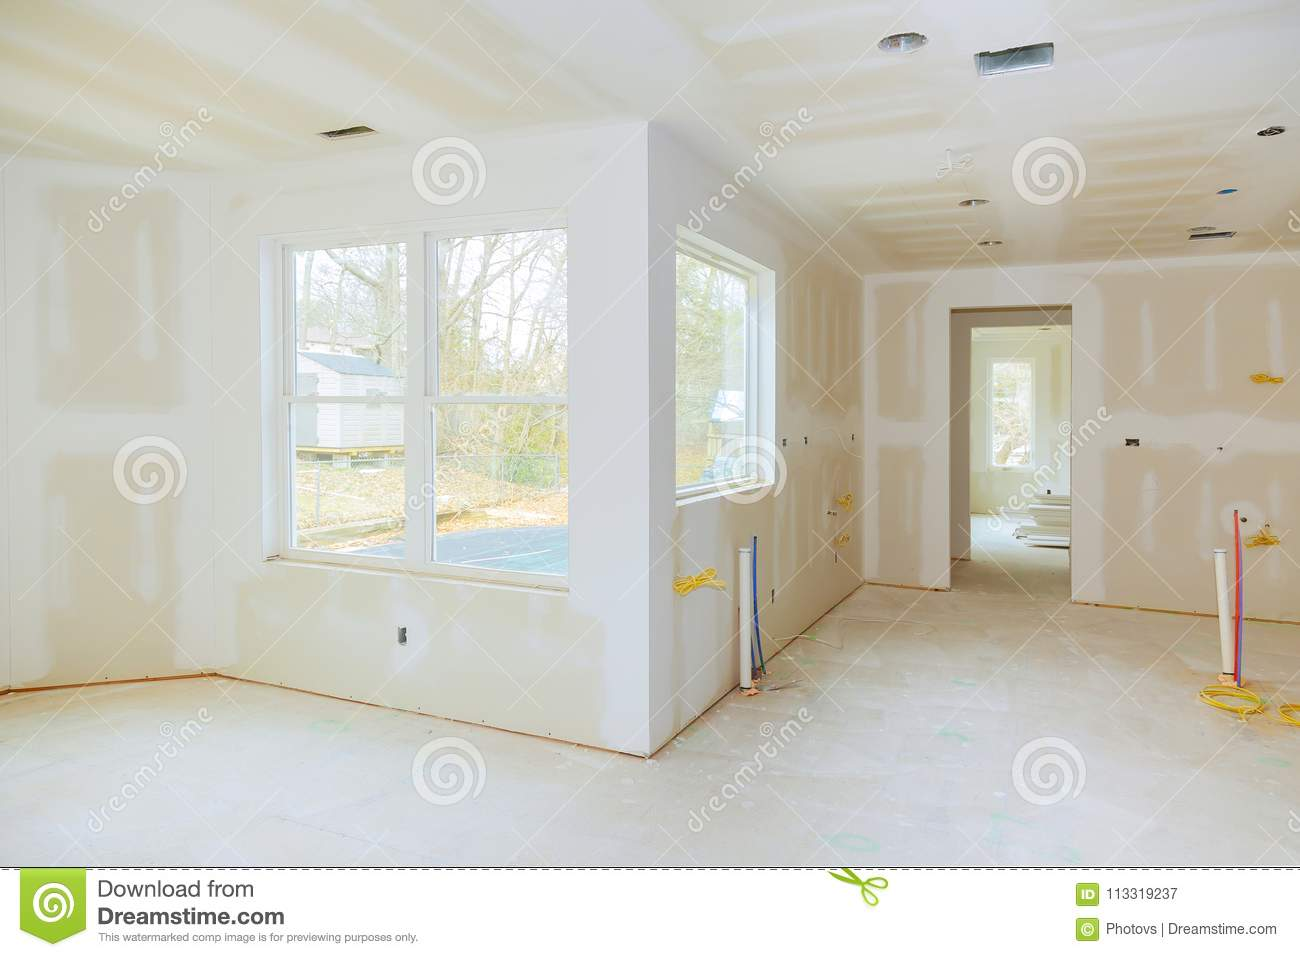 Gratis Drywall Interior Drywall Stock Photos - Royalty Free Images